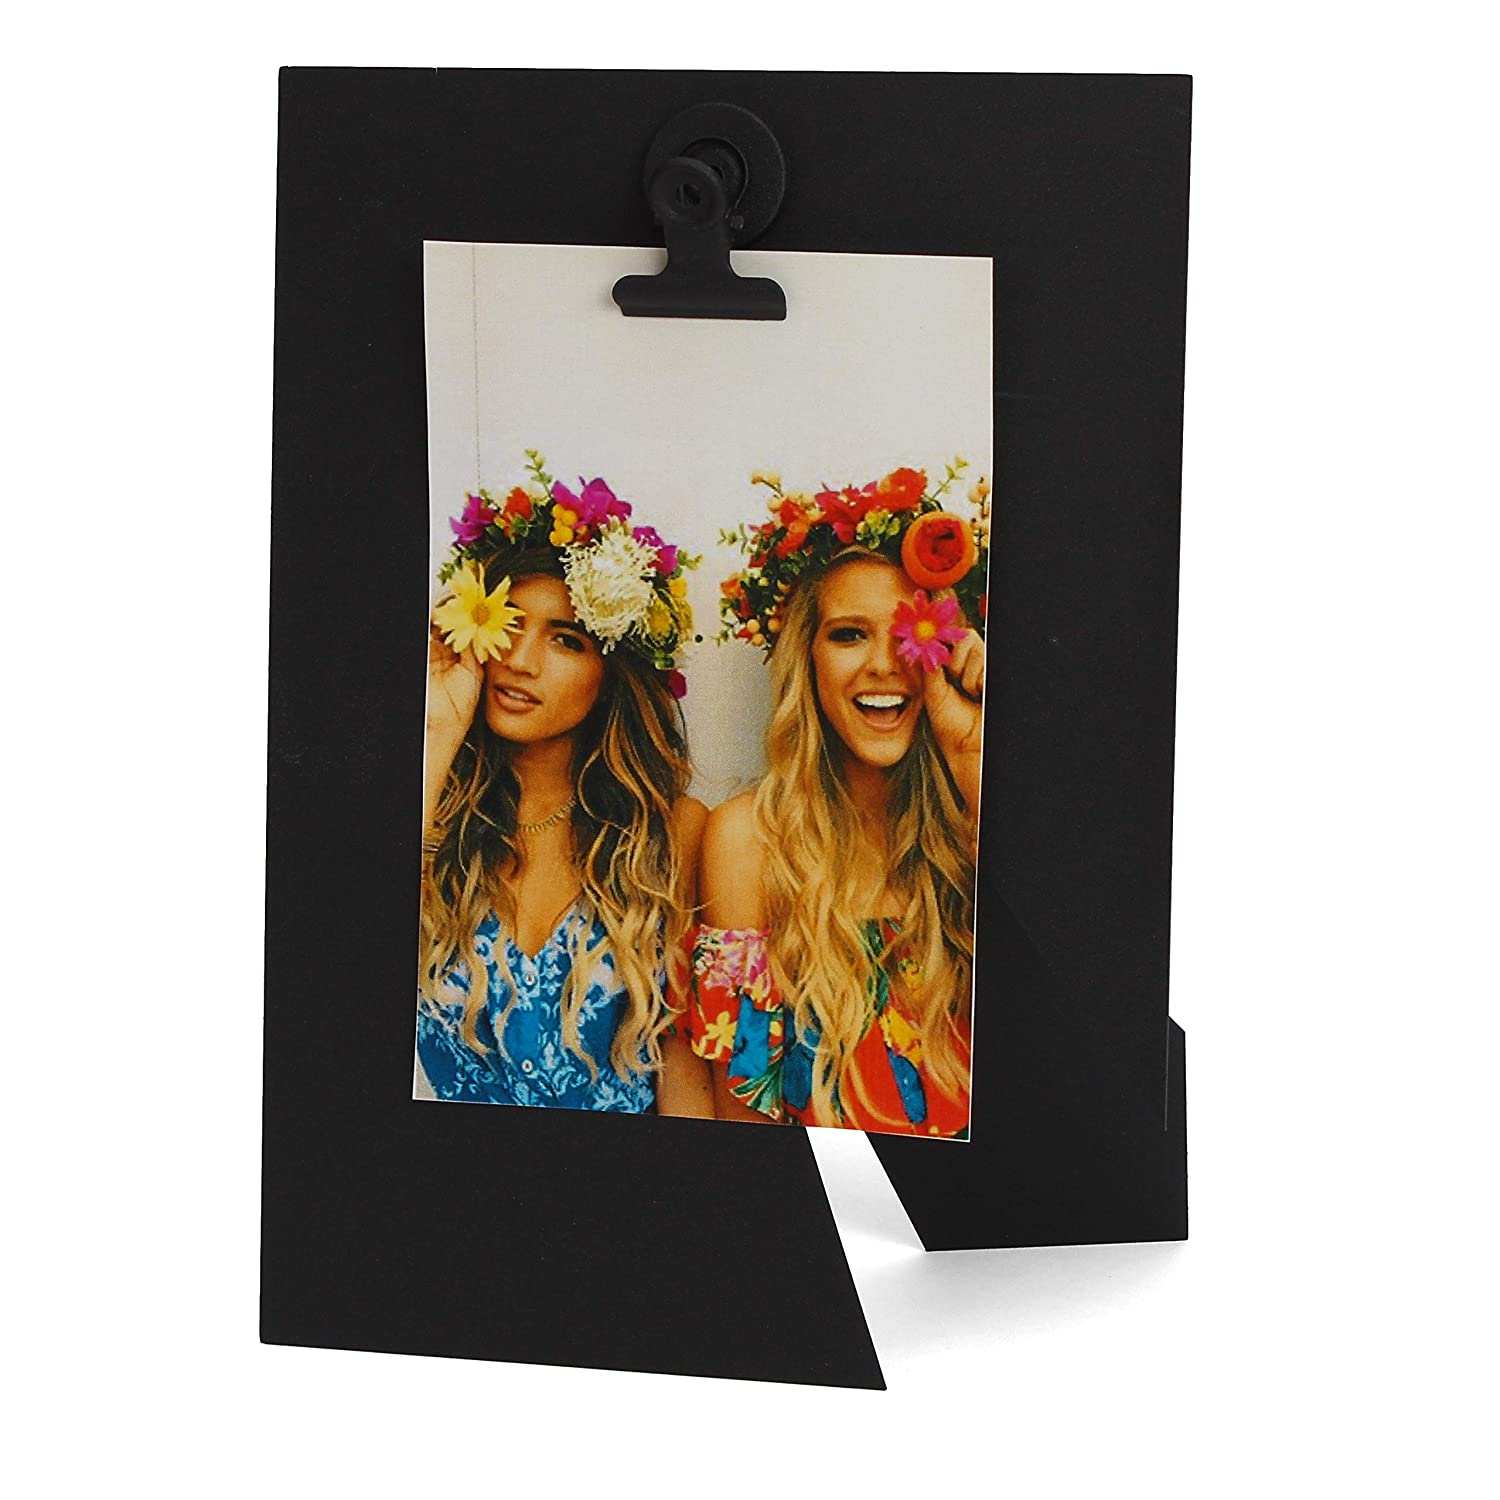 Milltown Merchants™ Modern Black Picture Frame - Clip Picture Frame - Metal Picture Stand Magnetic Photo Clip - Photo Clip Holder fits 4x6 5x7 Photo - Picture Stand (1 pack)